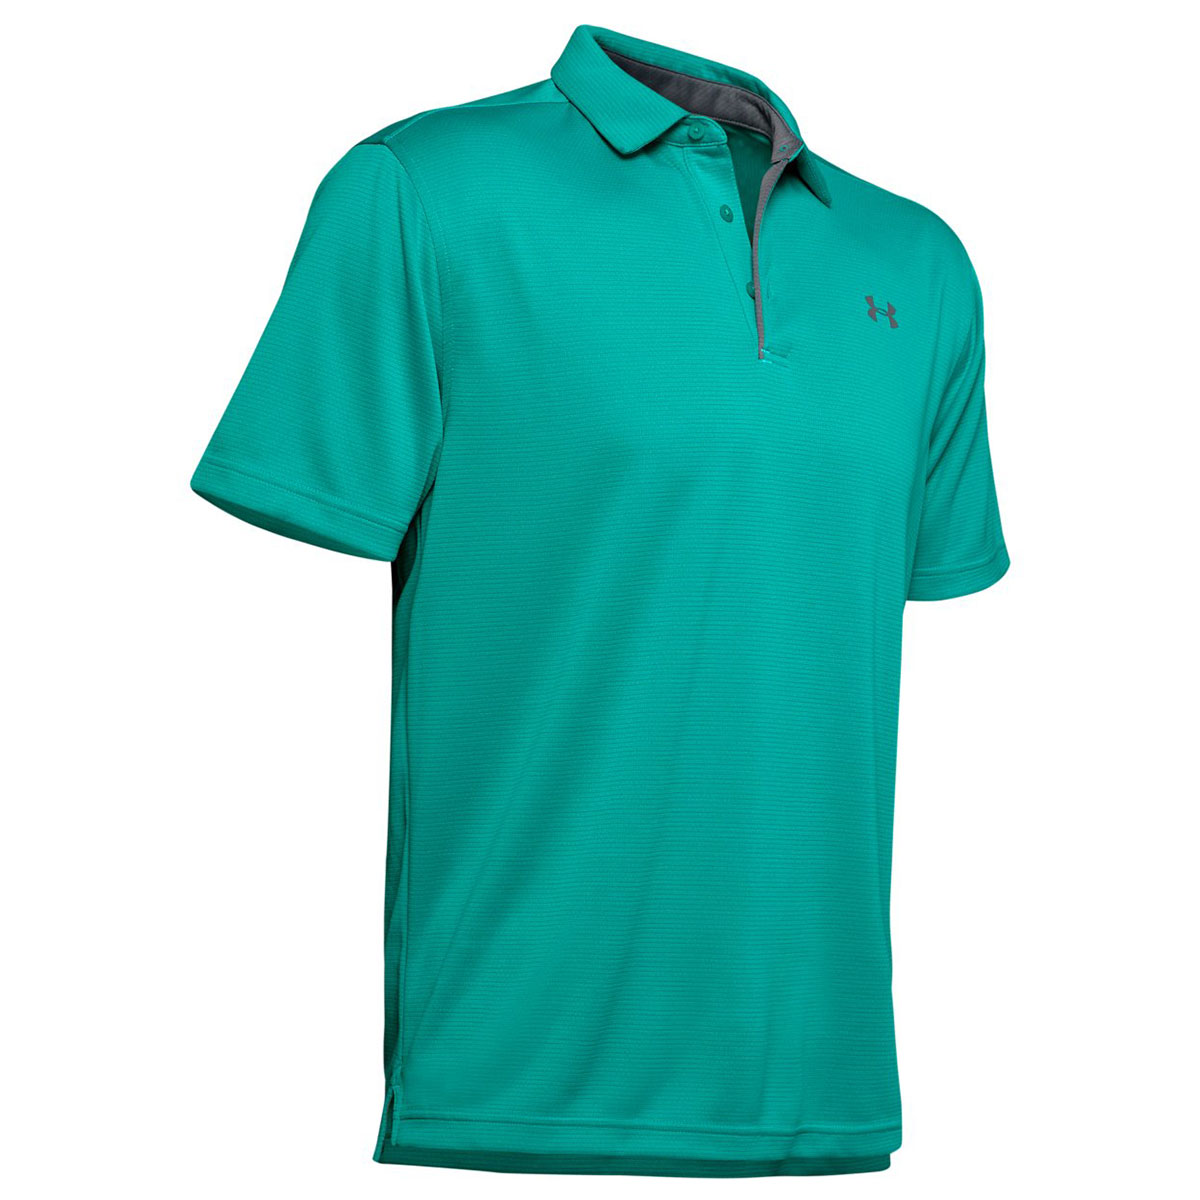 Under-Armour-Mens-2019-Golf-Tech-Wicking-Textured-Soft-Light-Polo-Shirt thumbnail 72